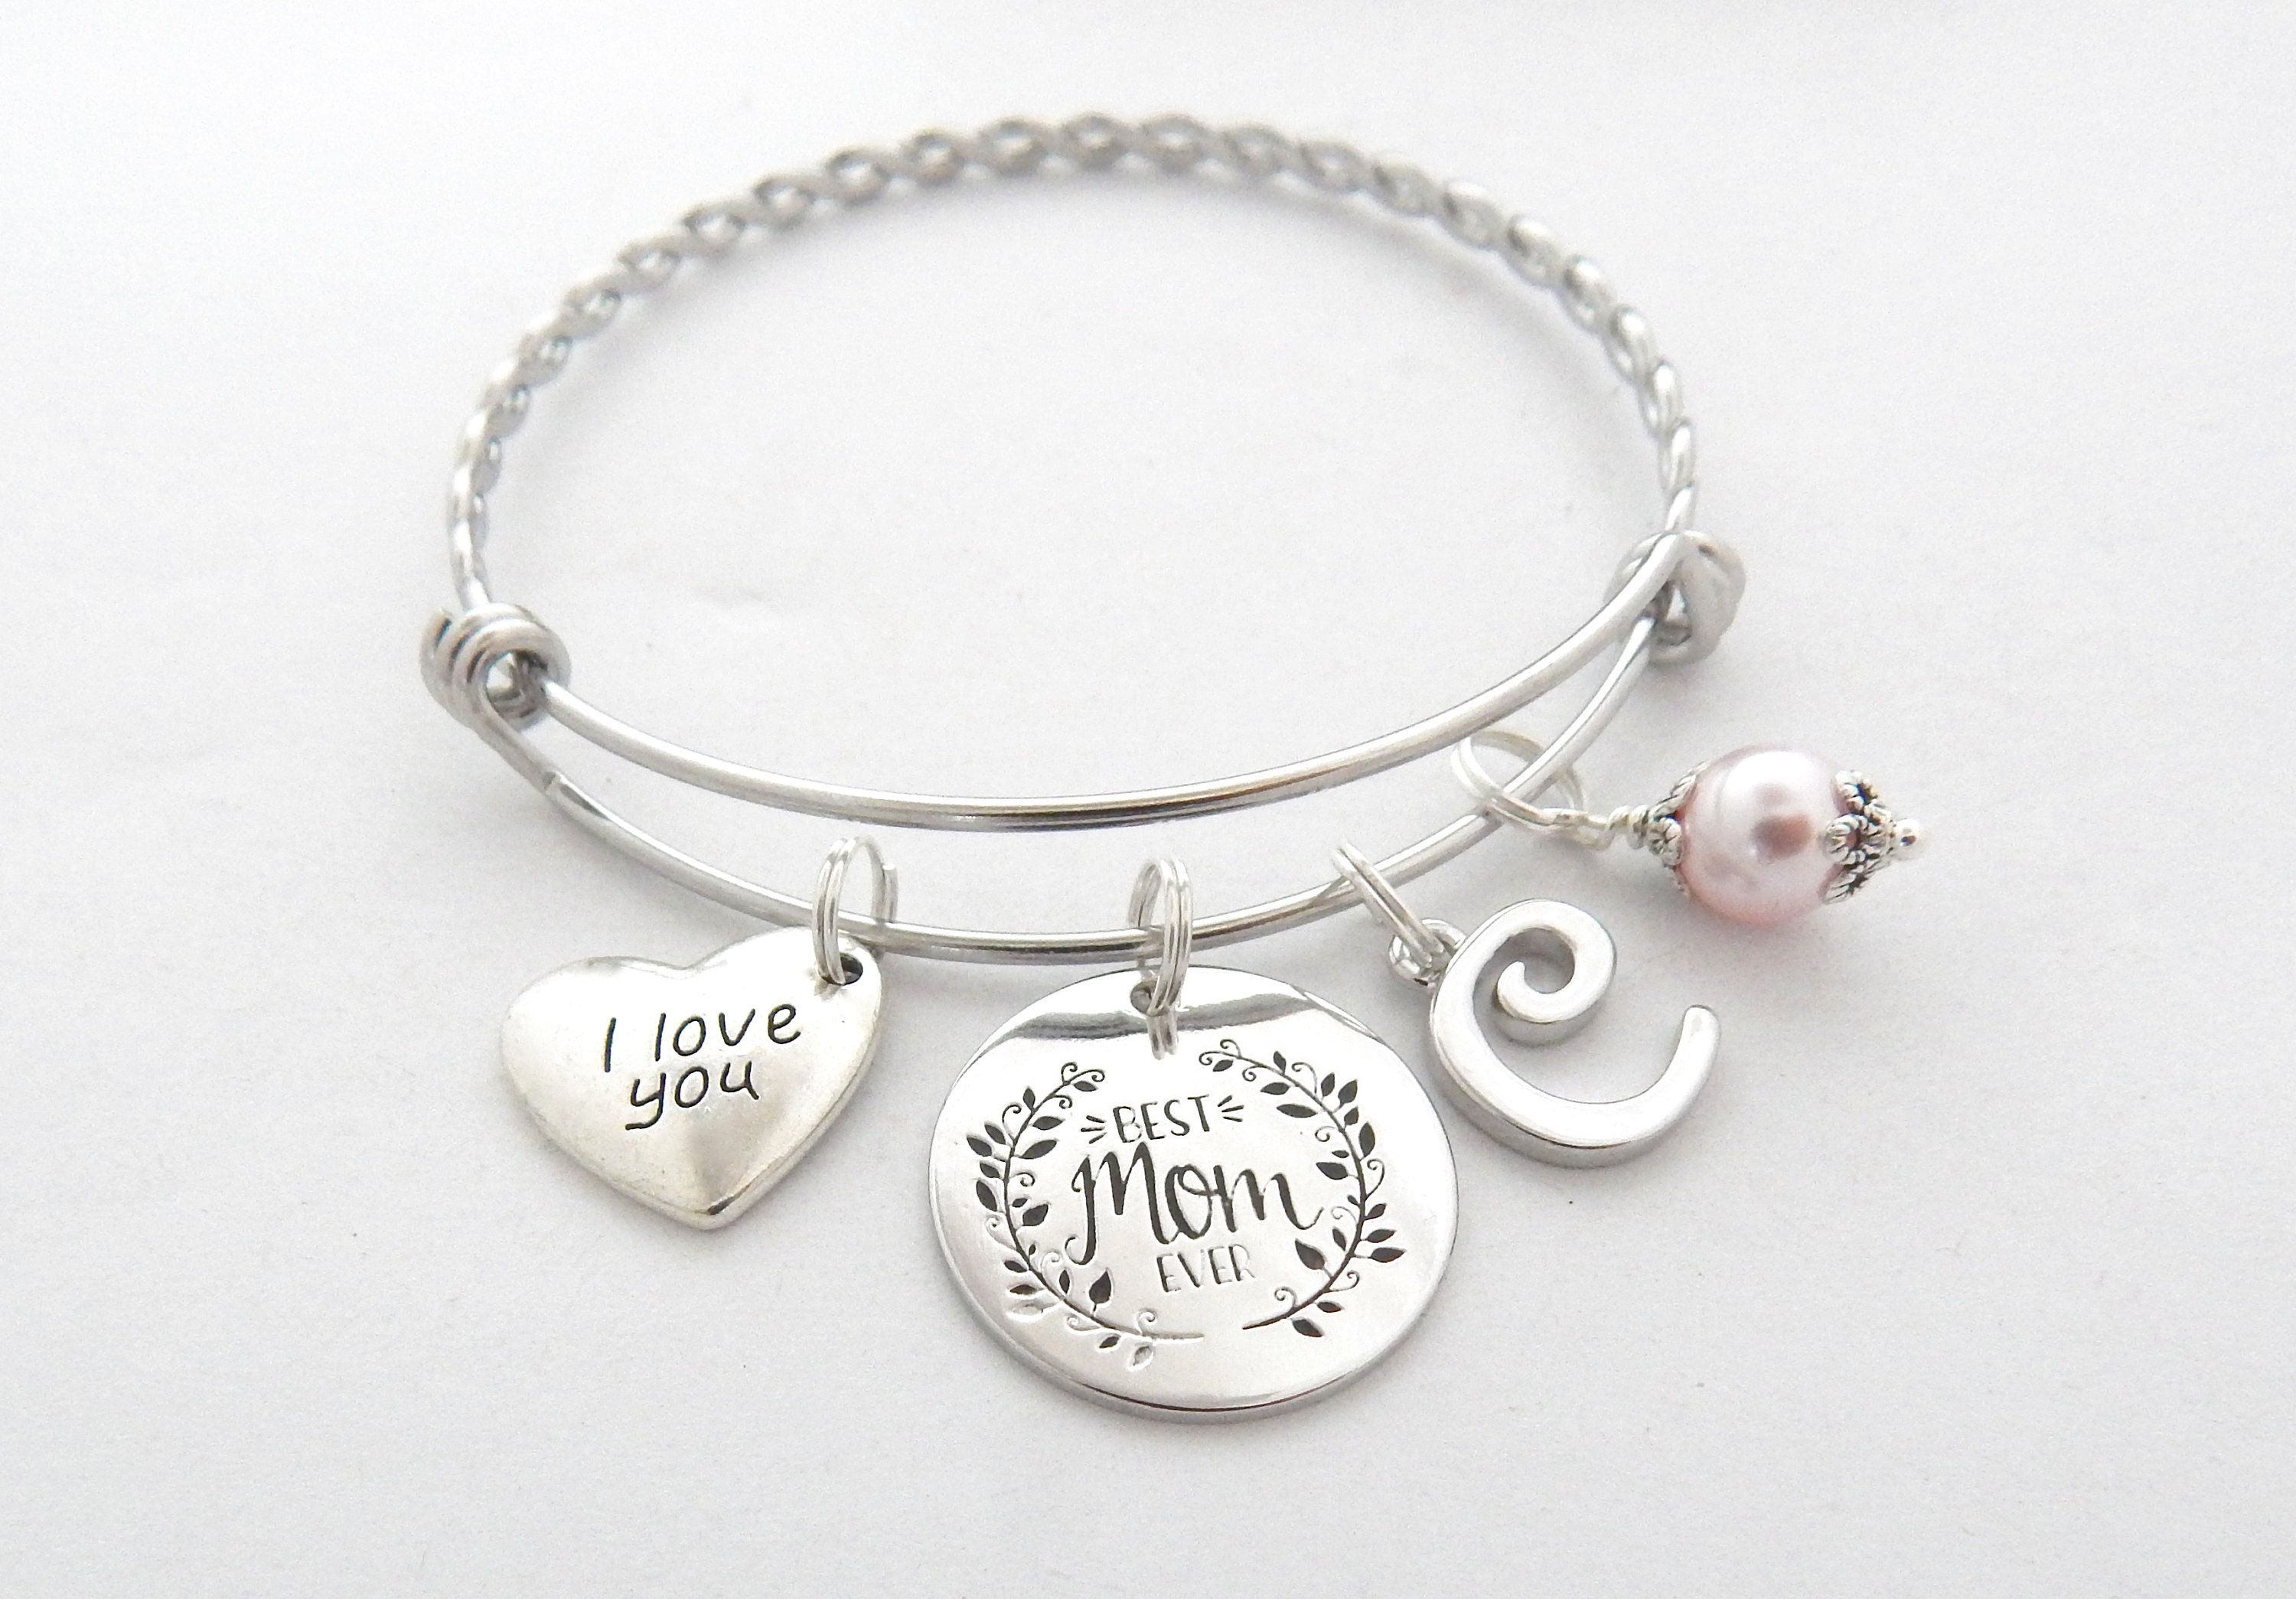 bracelet trollbeads day hooper for mum charms uk roses beads bolton trollcharms mothers